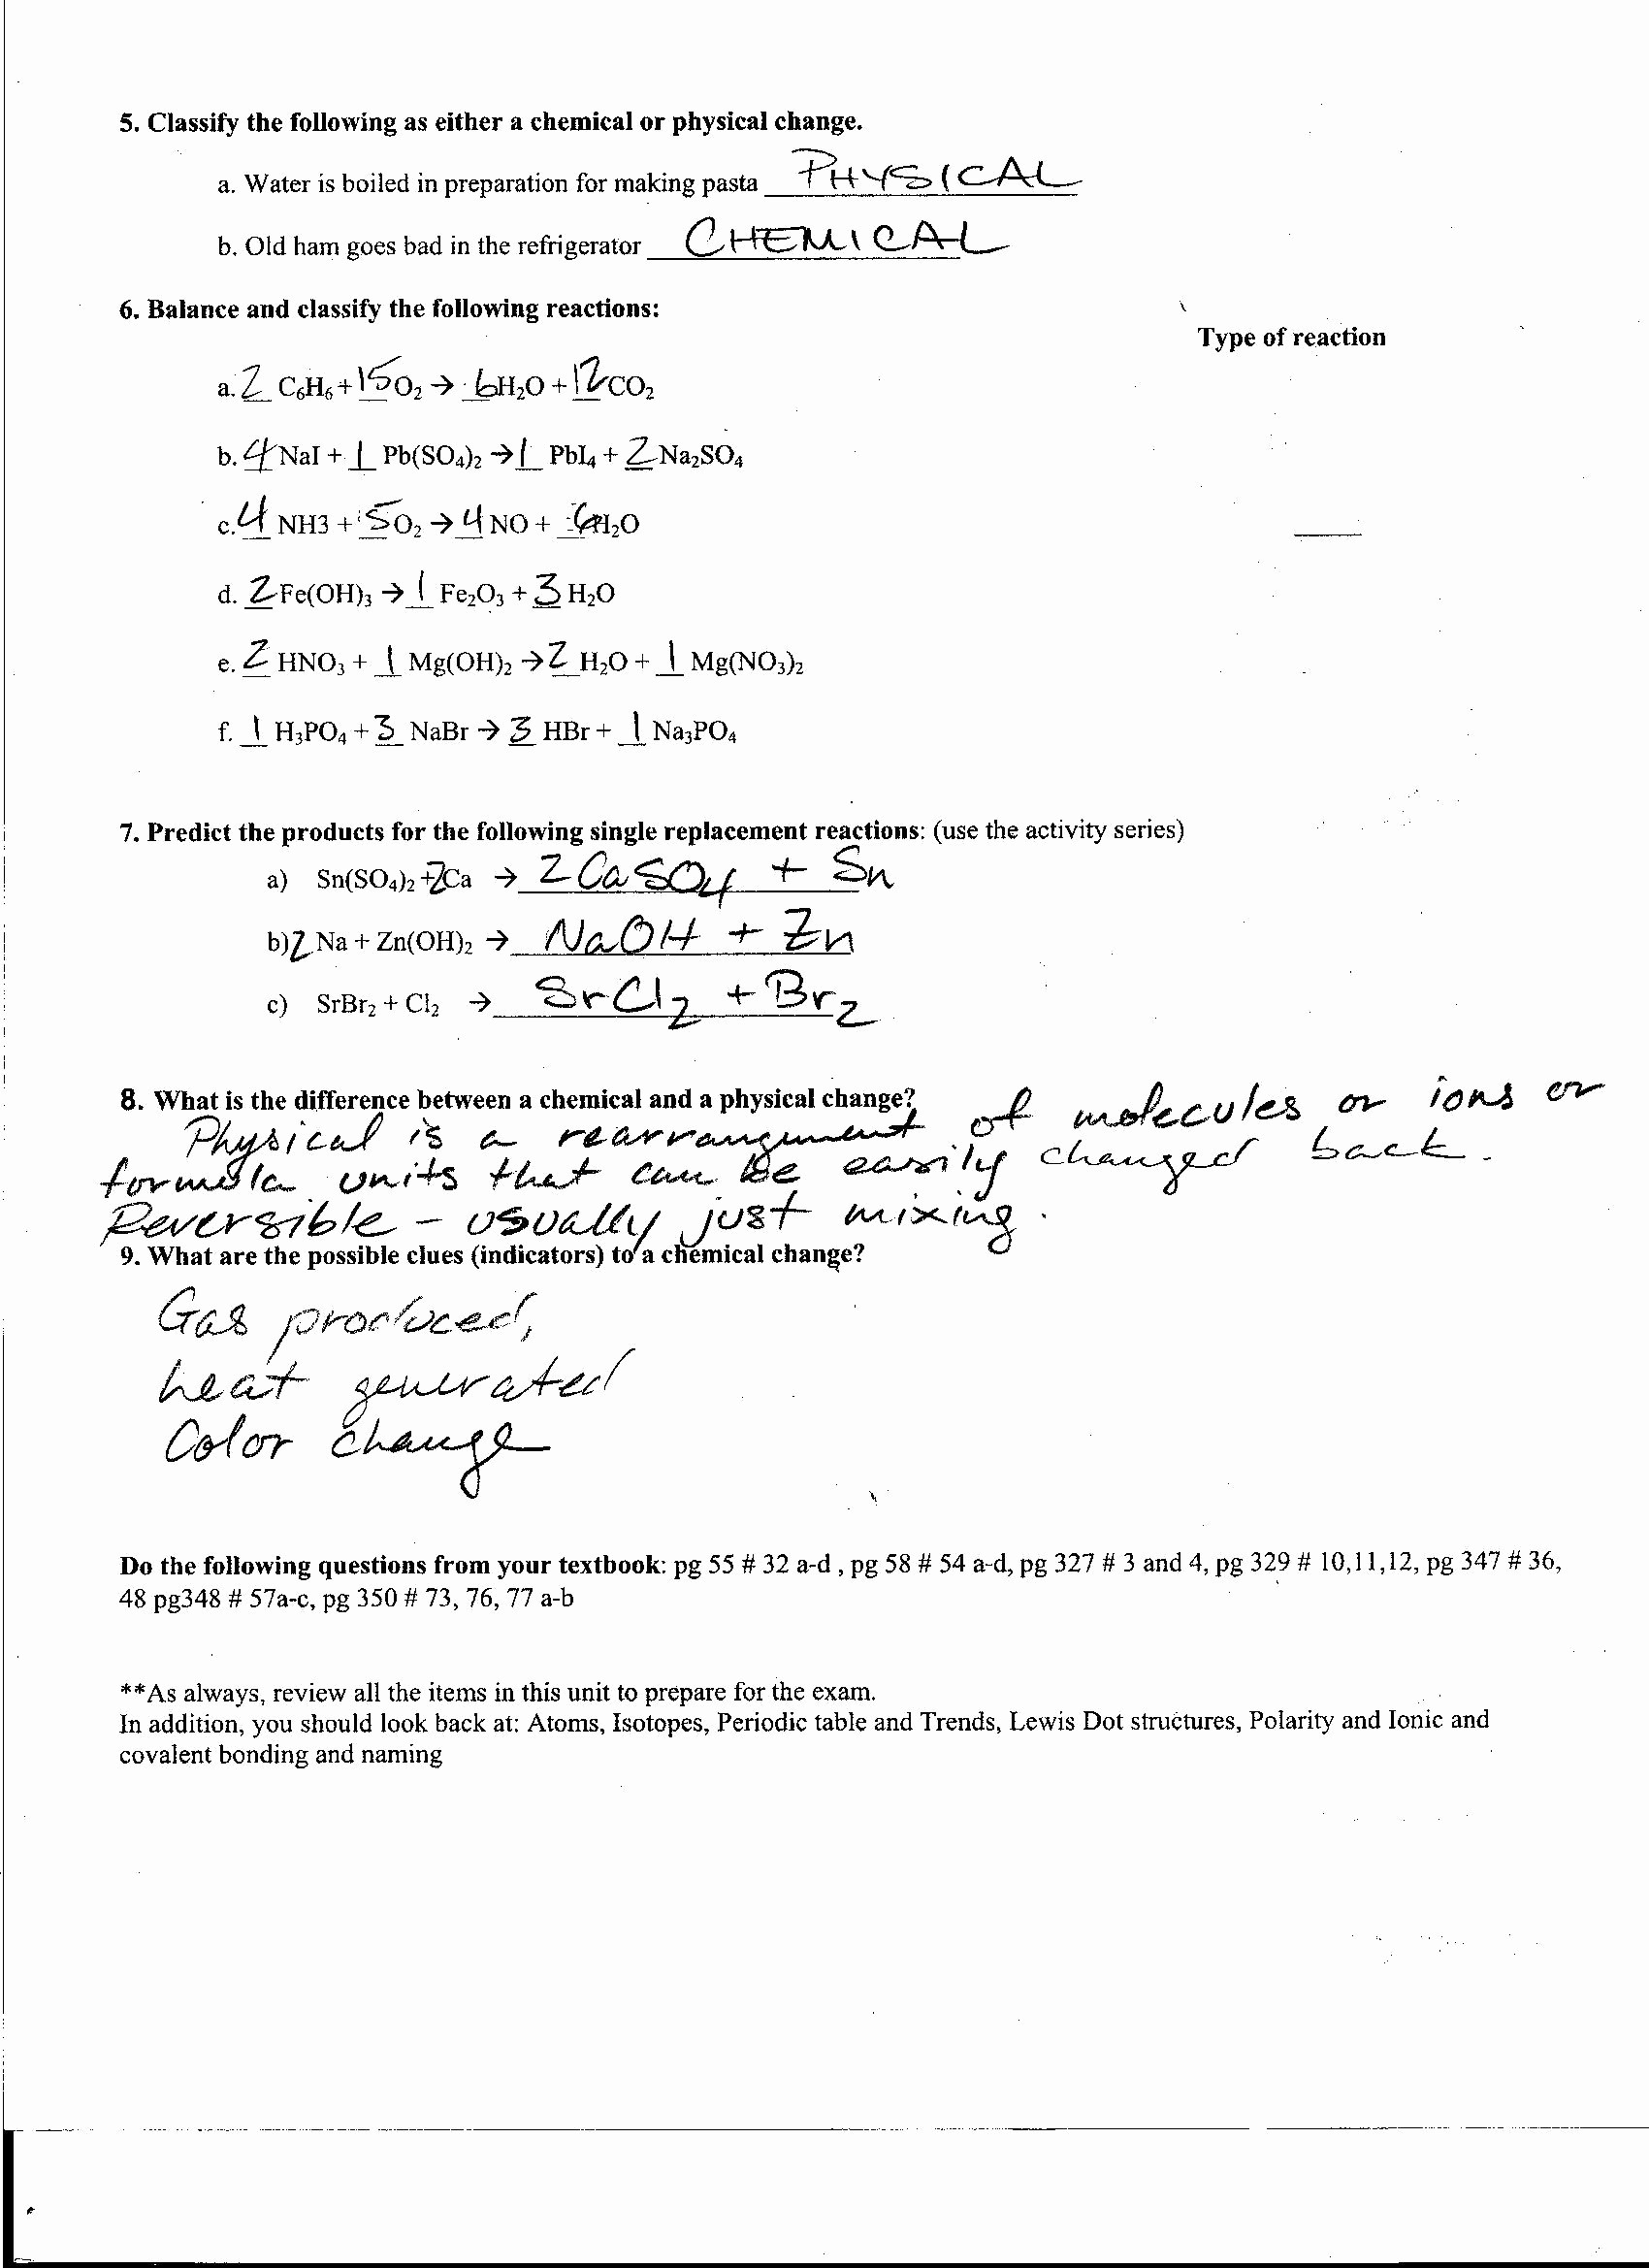 Periodic Trends Worksheet Answers Chemistry I 2005 Worksheet 4 3 Periodic Trends Answers